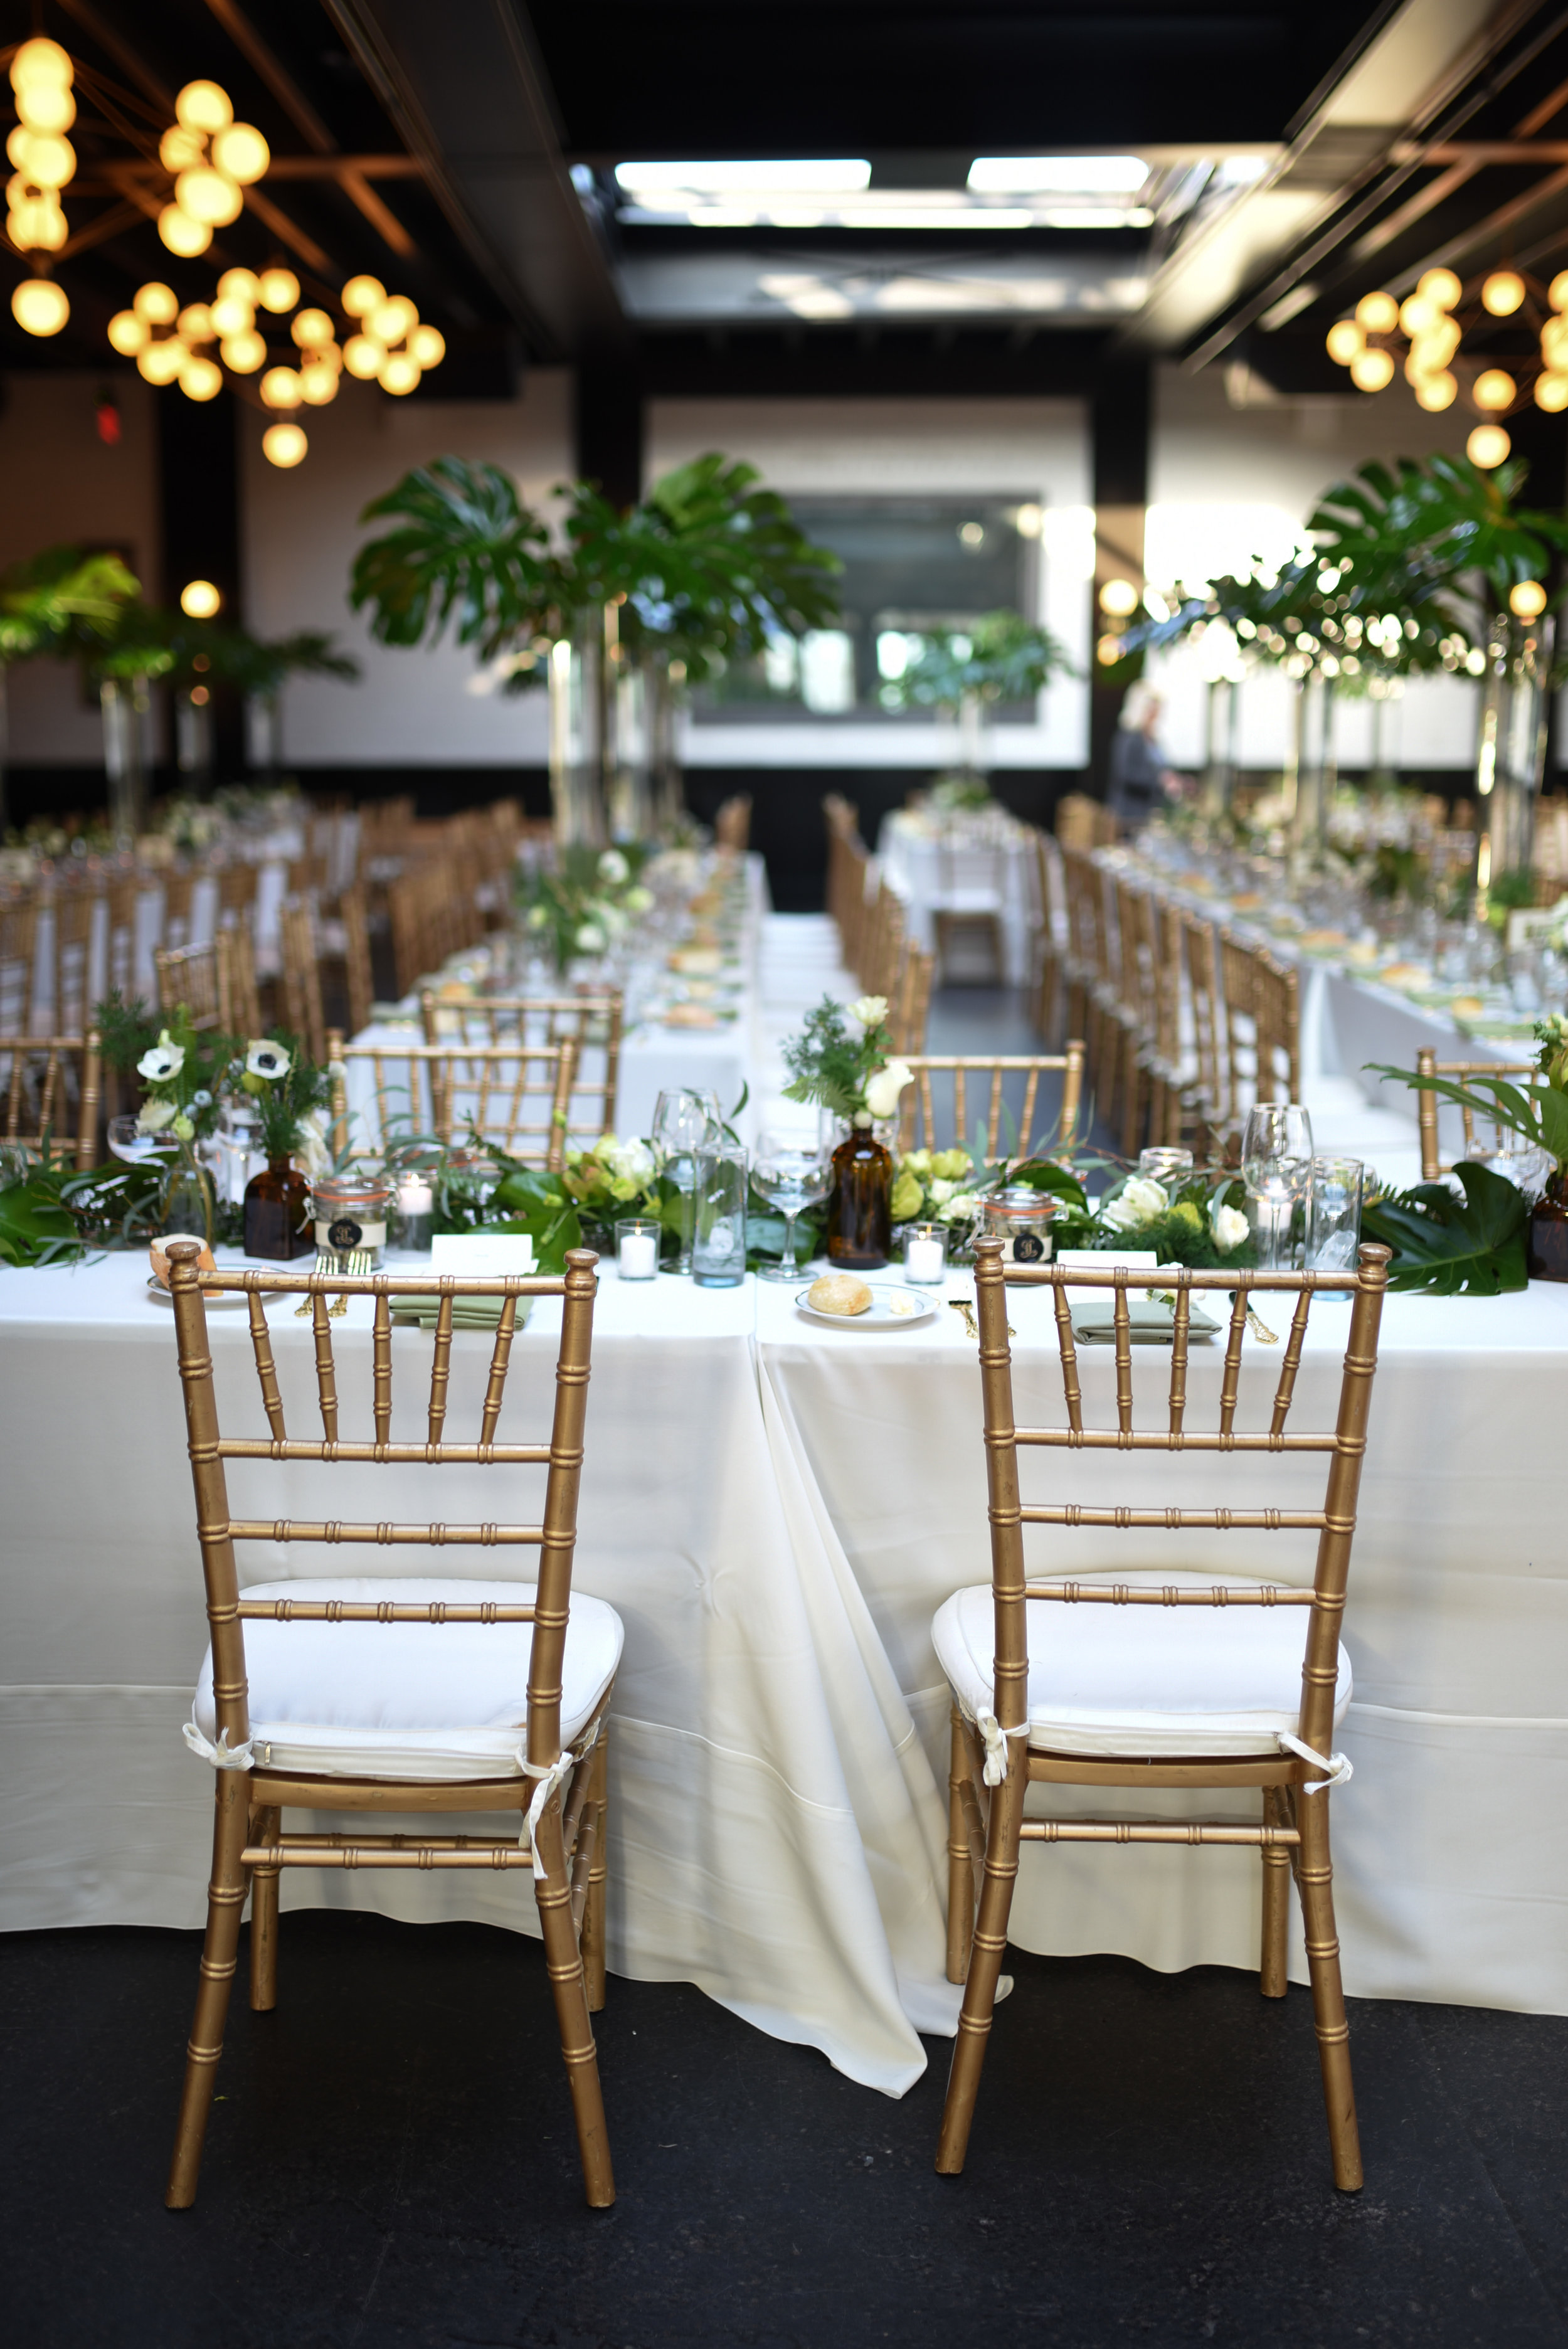 501 Union Wedding, featuring grand botanical big tropical foliage and ferns.